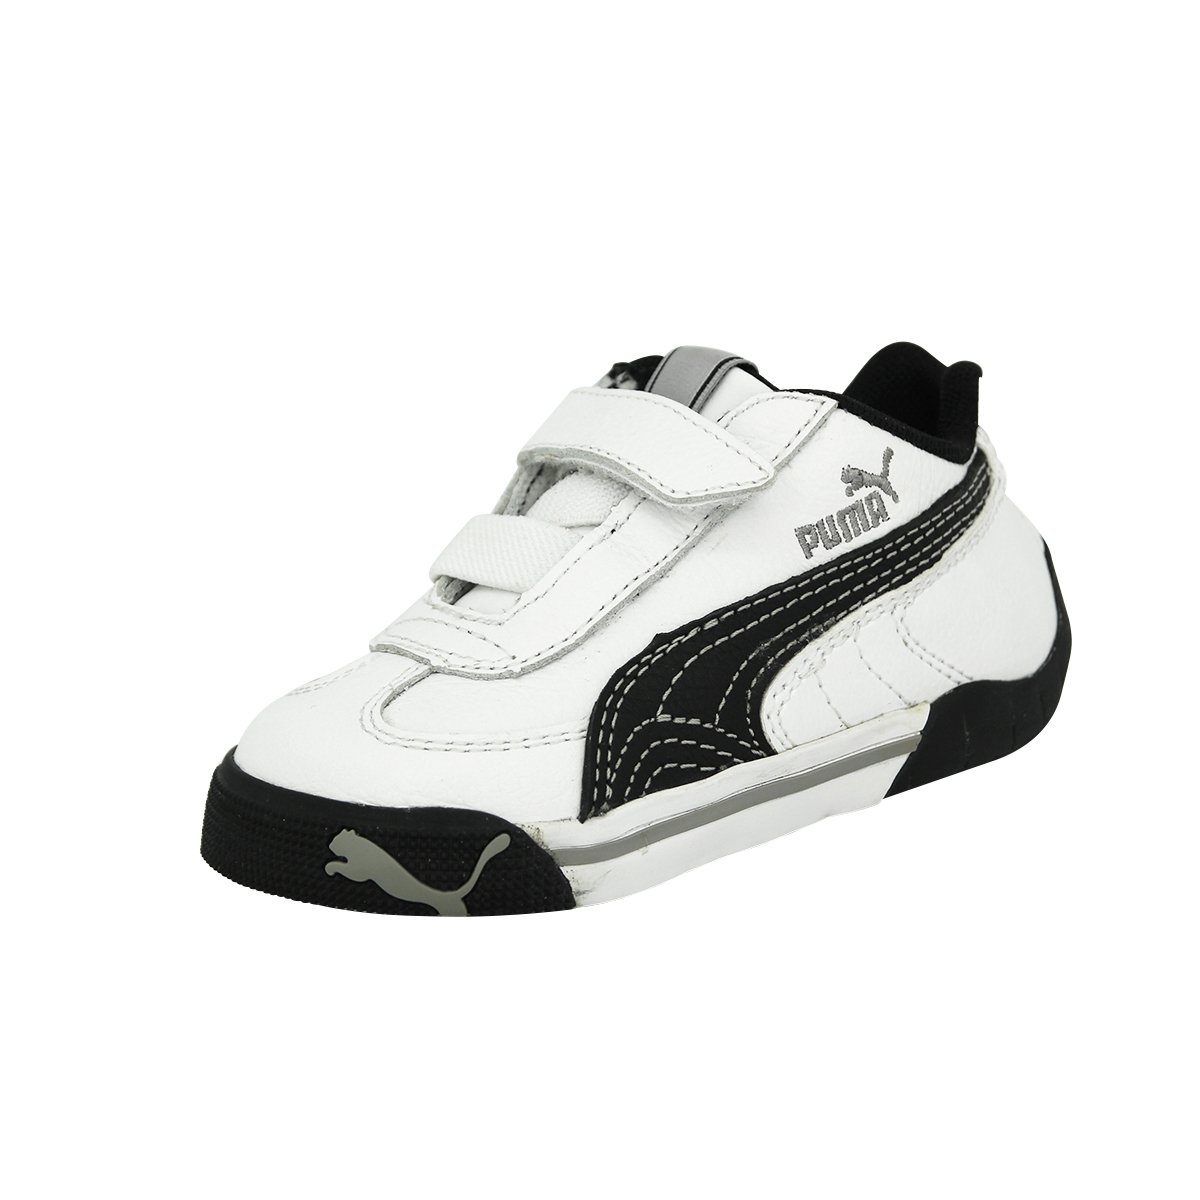 Puma Speed cat 2.9 lo v 30286805, Baskets Mode Enfant